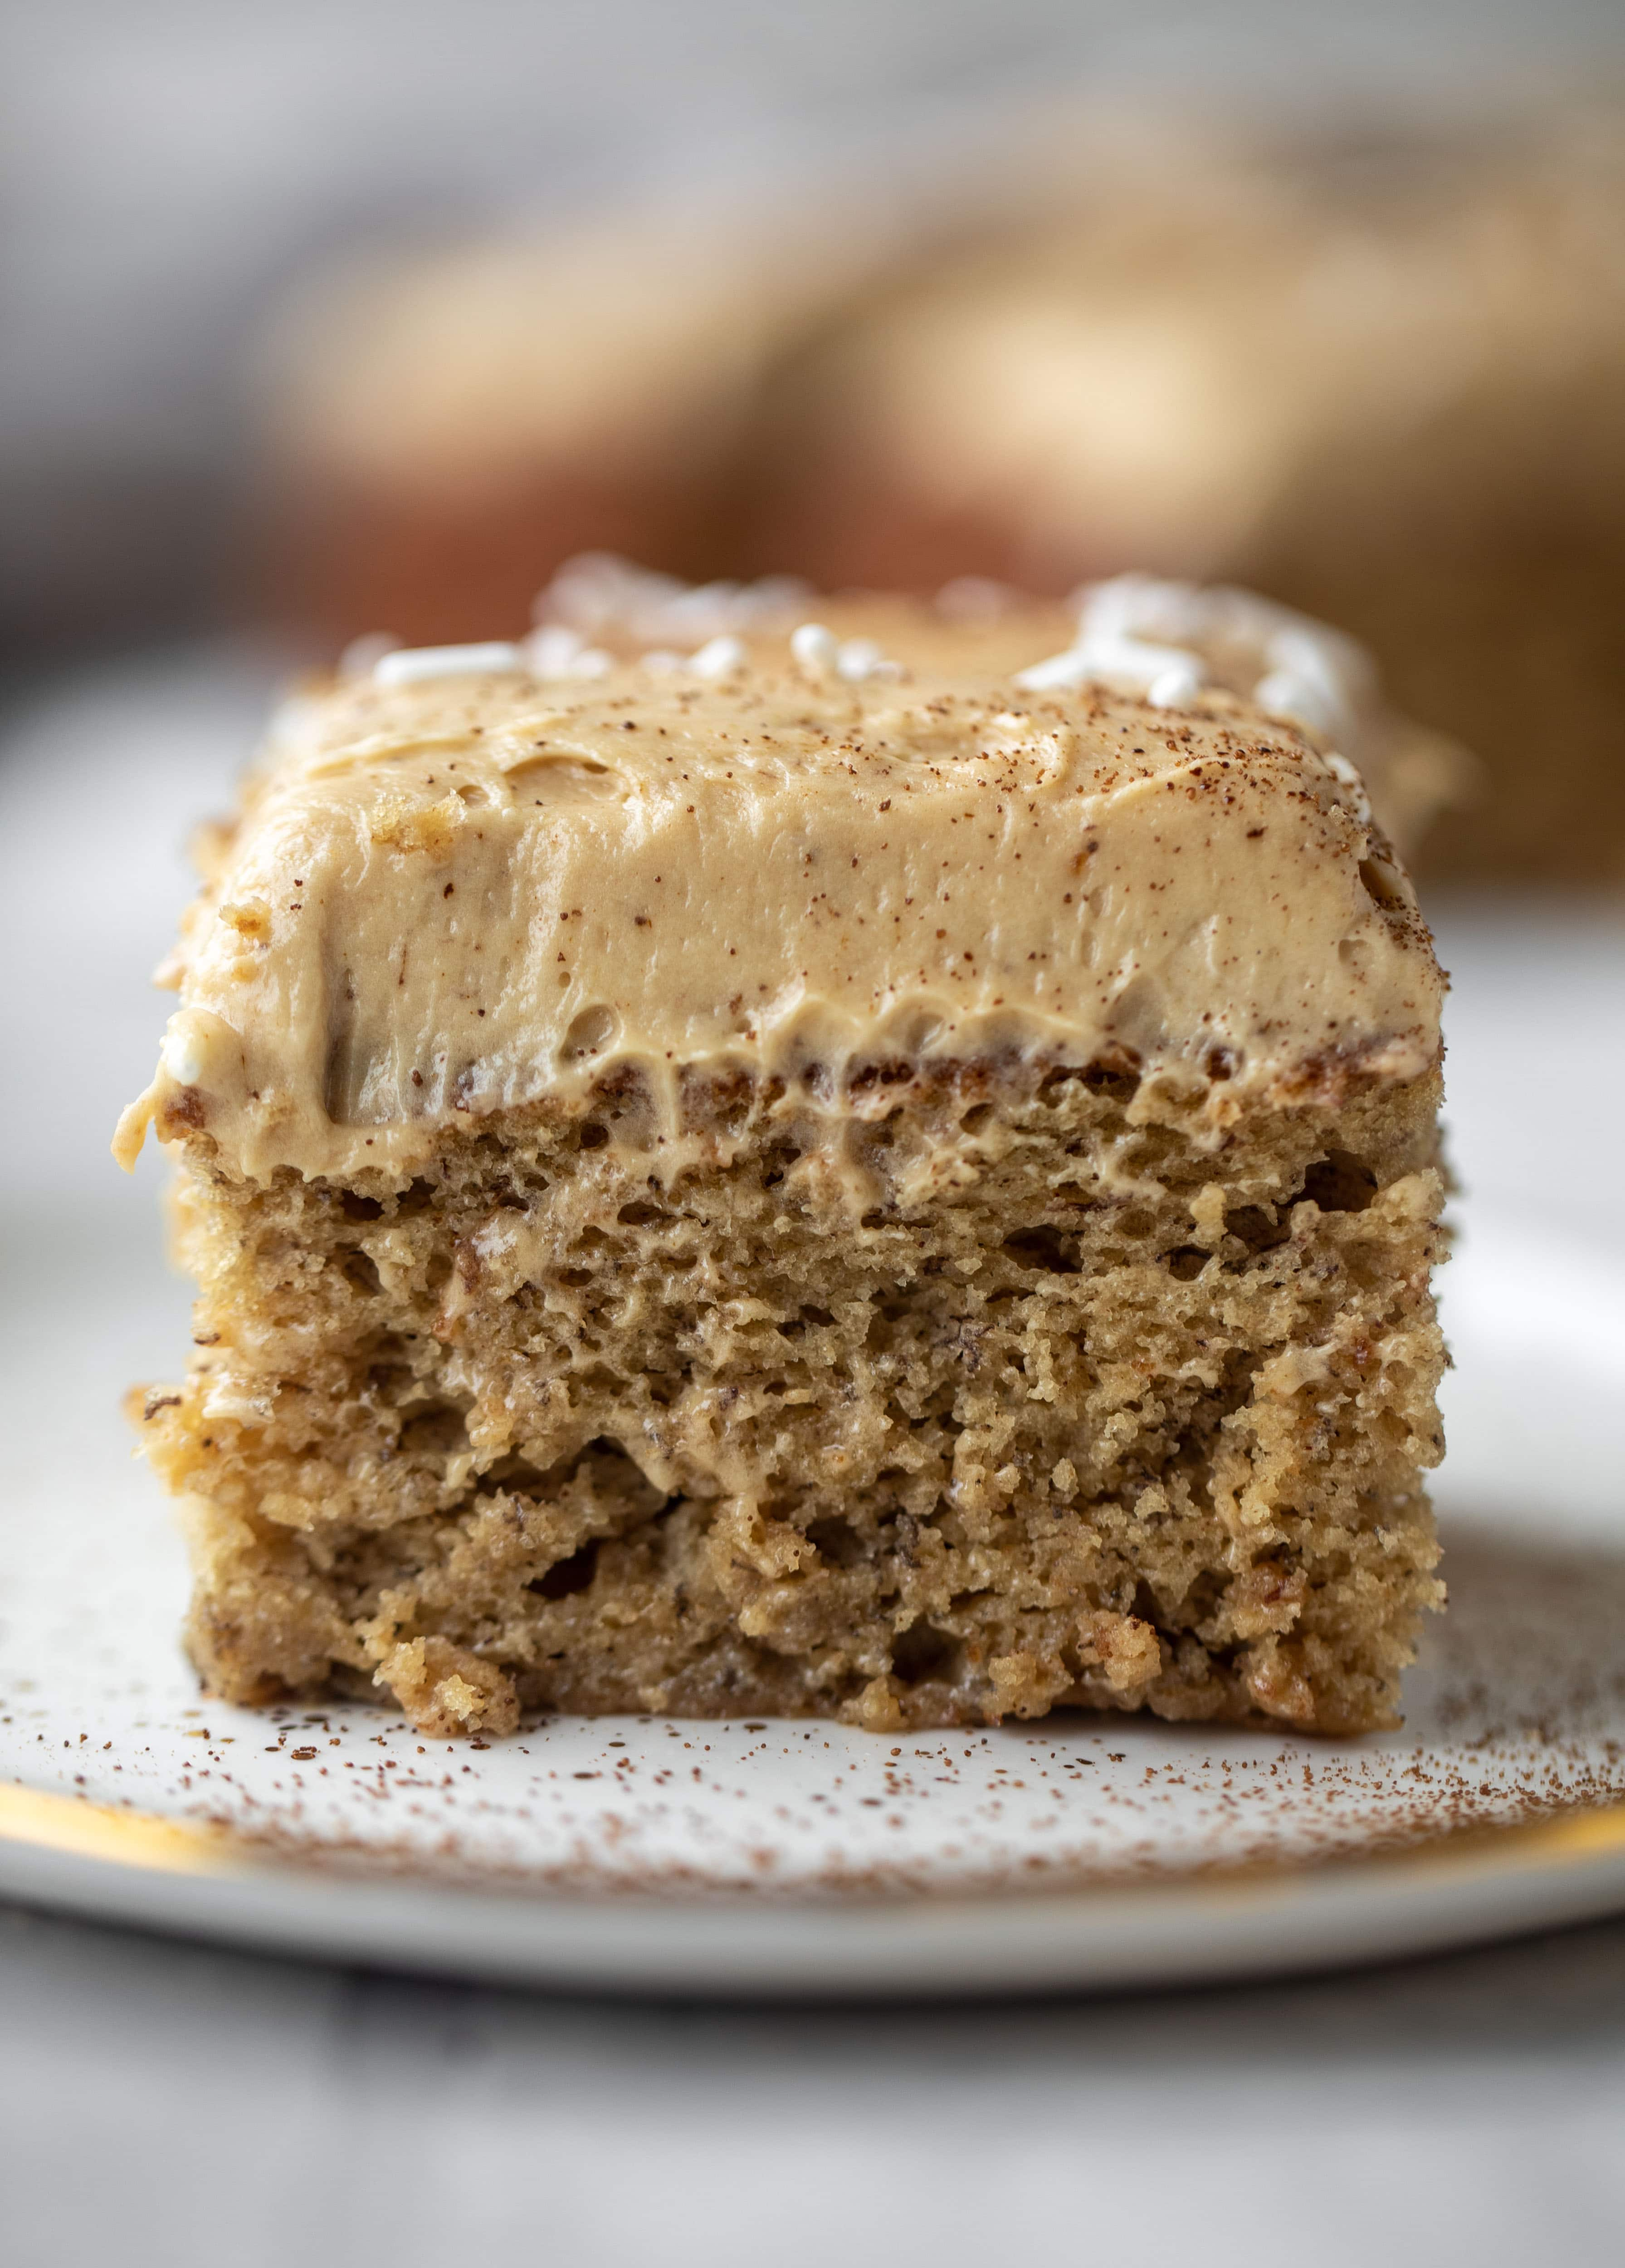 This banana cake is a delicious twist on banana bread! Covered with coffee cream cheese frosting, it's an easy and wonderful treat.